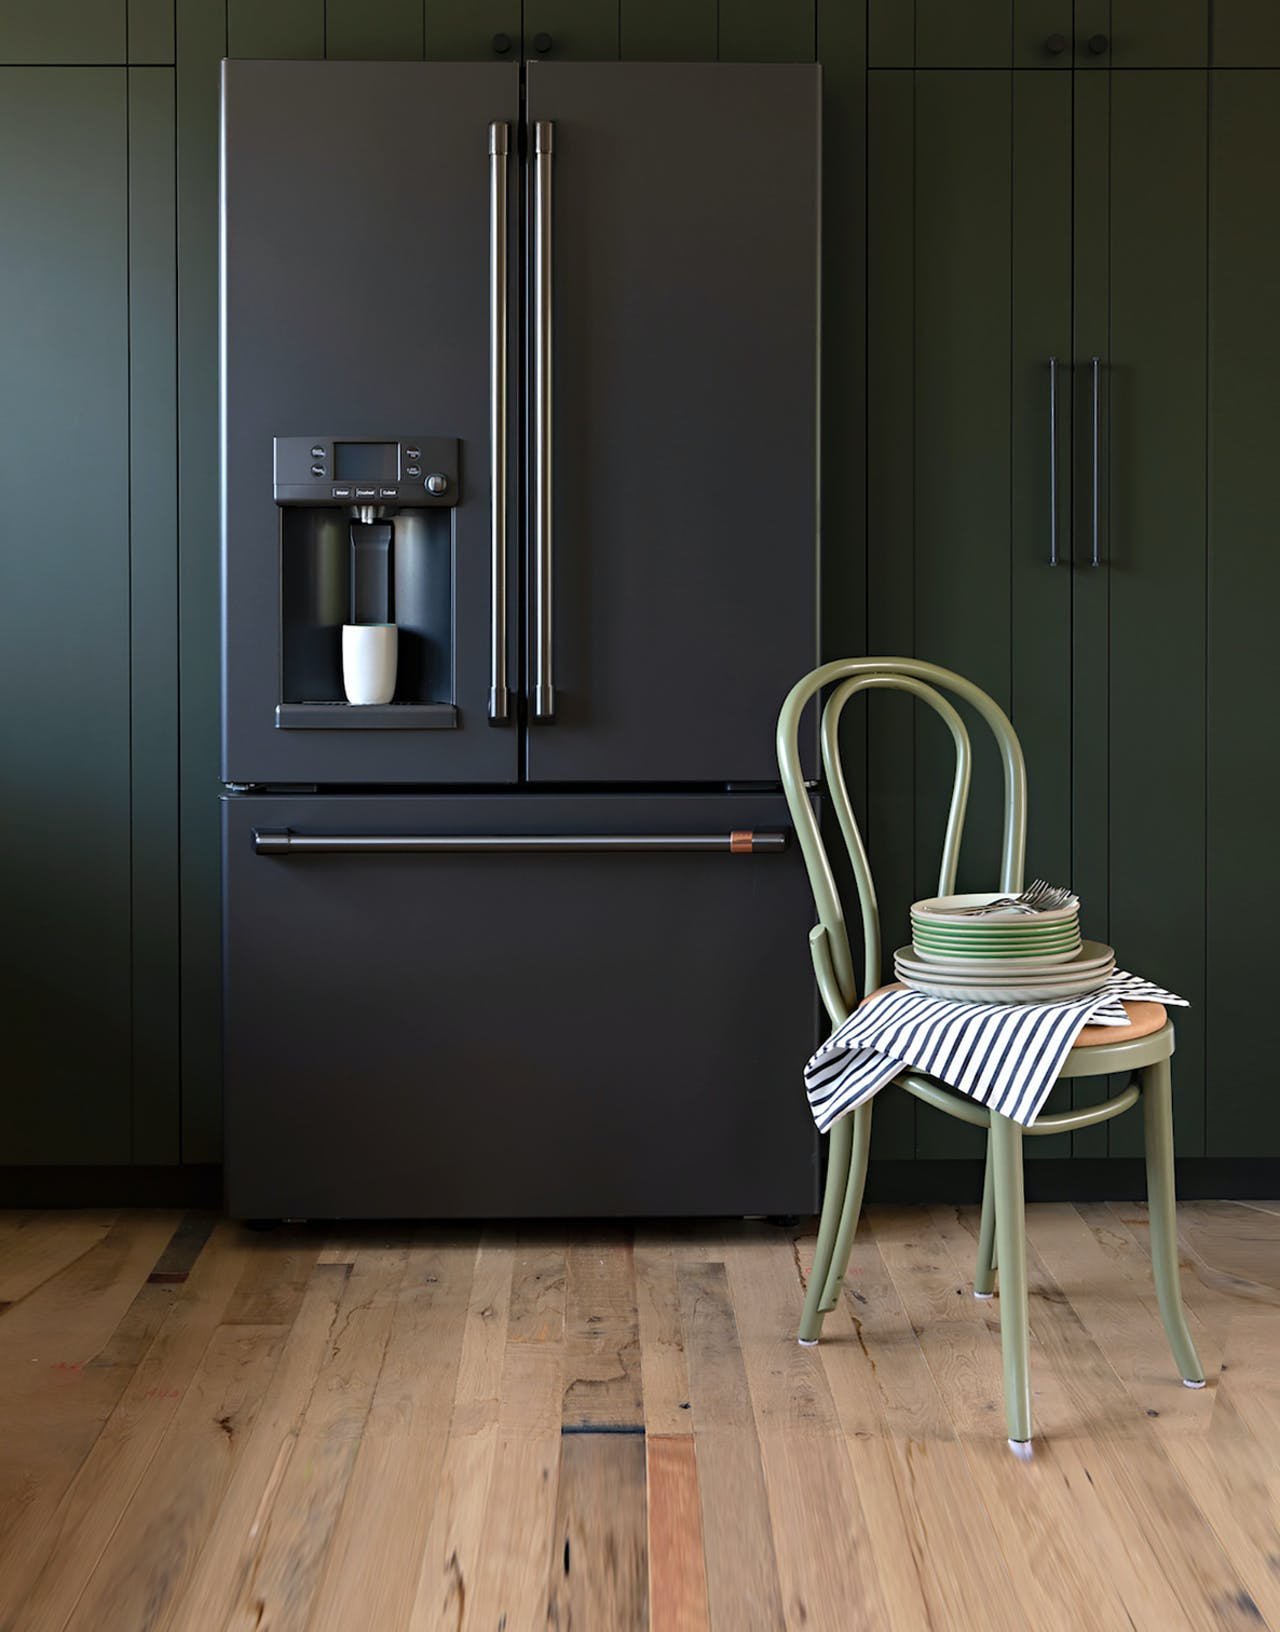 matte black French door refrigerator in sage green cabinets